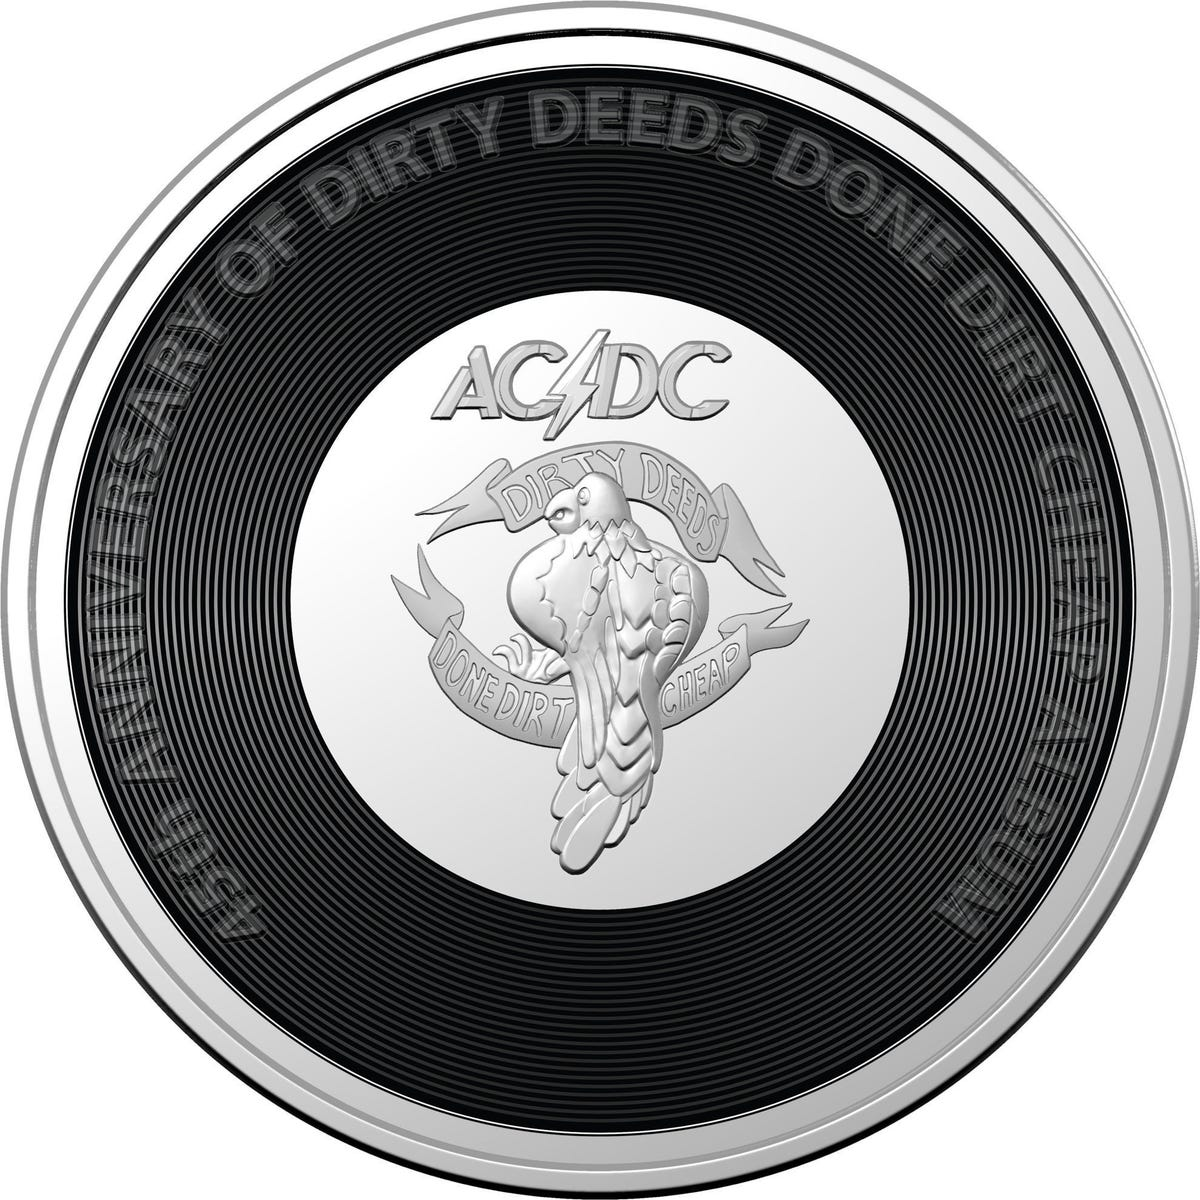 Royal Aust. Mint AC/DC Coin Collection - Limited - Seven Uncirculated Coins